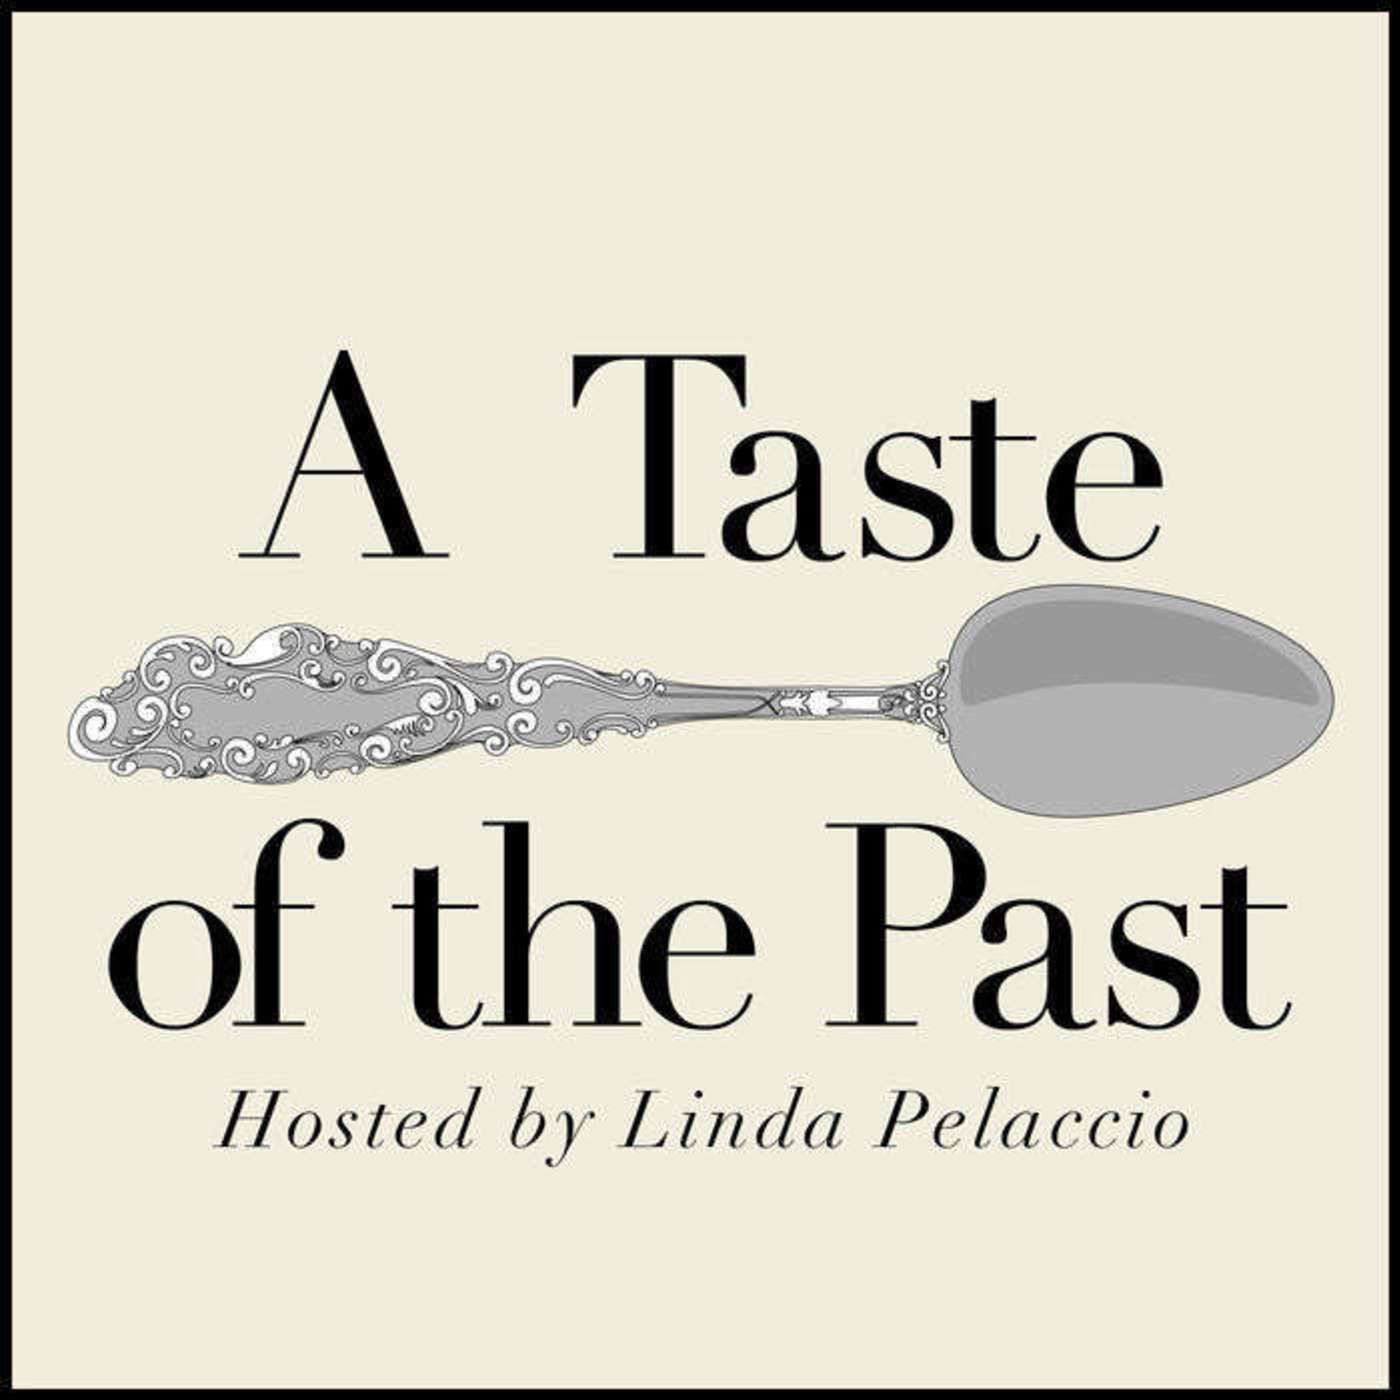 Episode 136: Babylonia and Beyond: History of Iraqi Cuisine